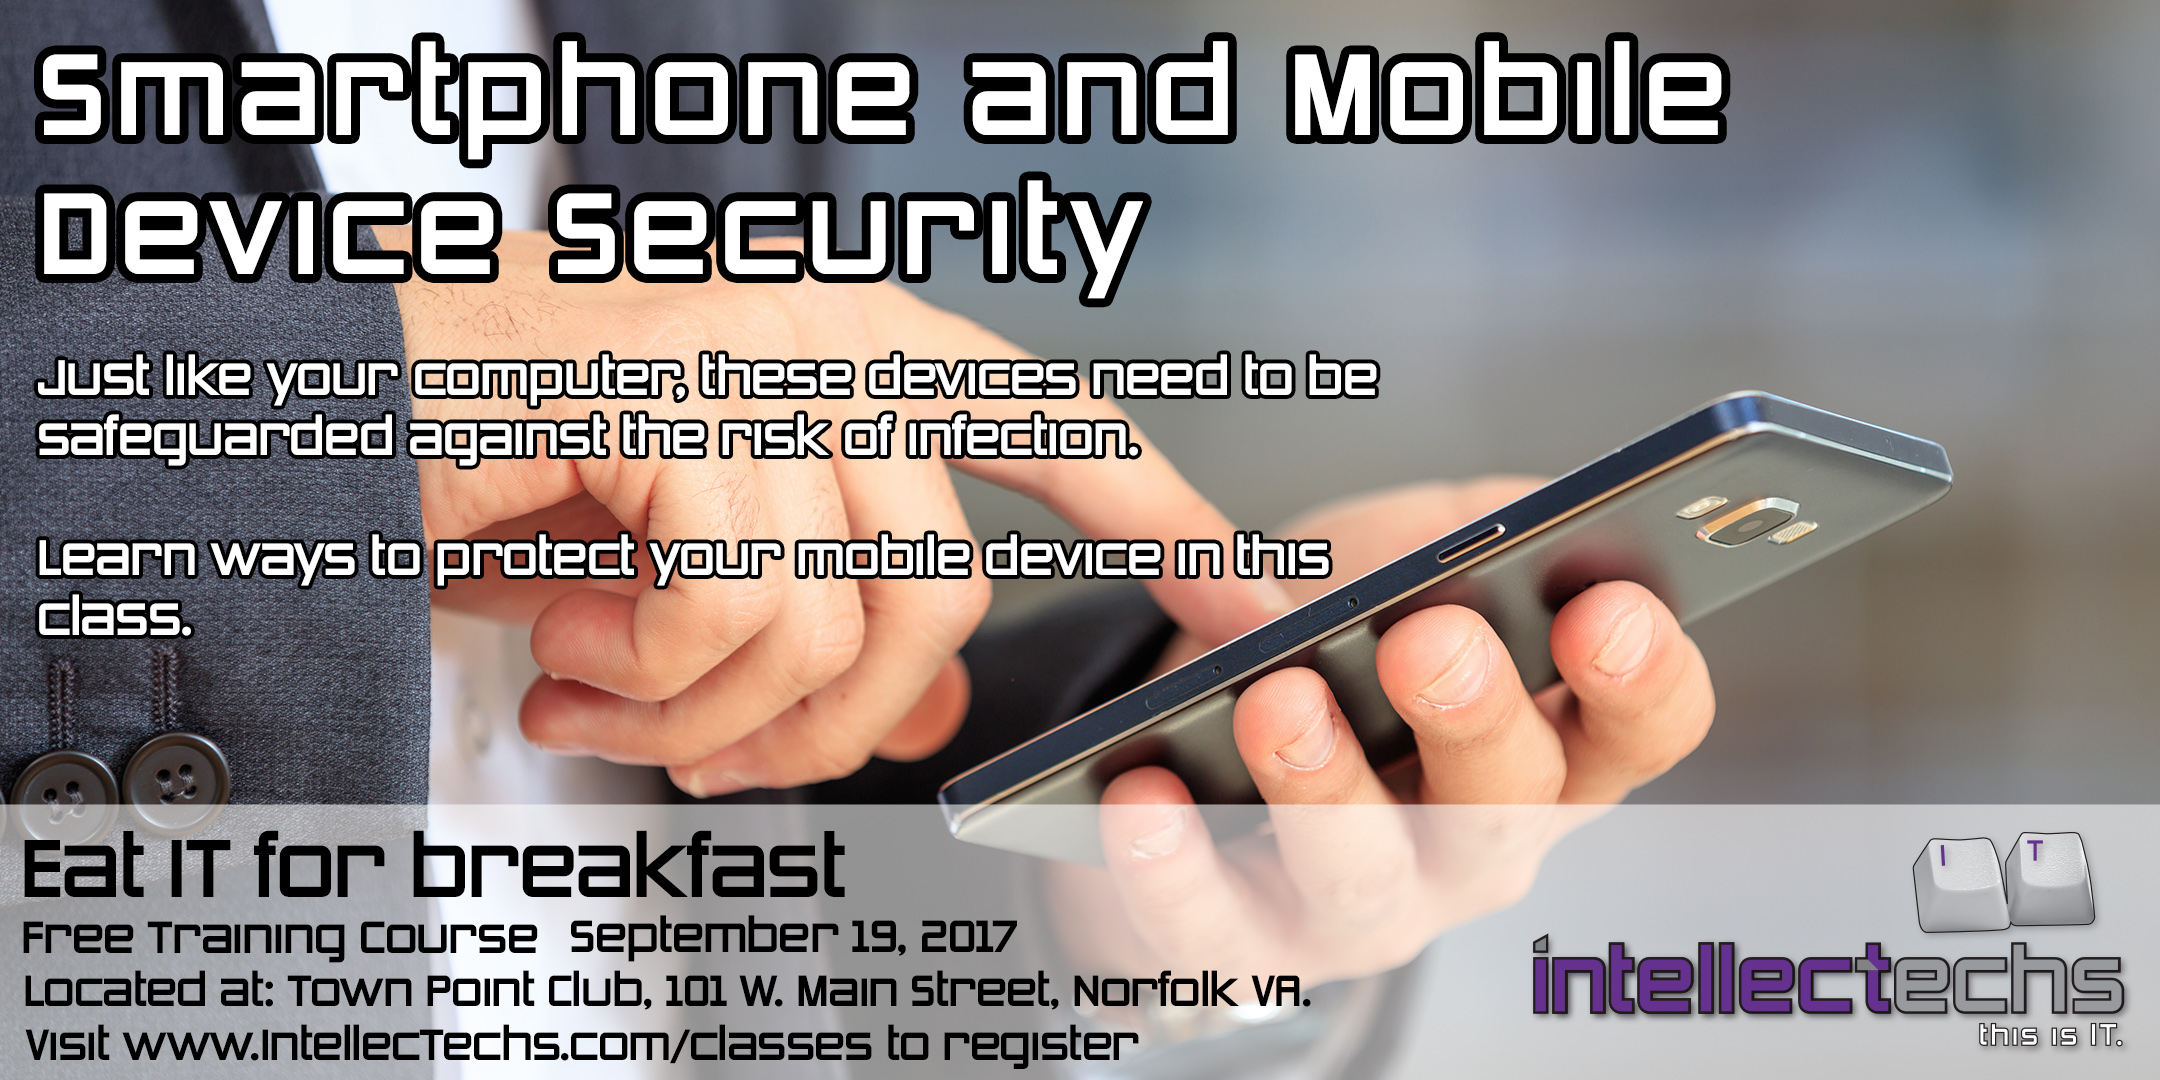 Smartphone & Mobile Device Security